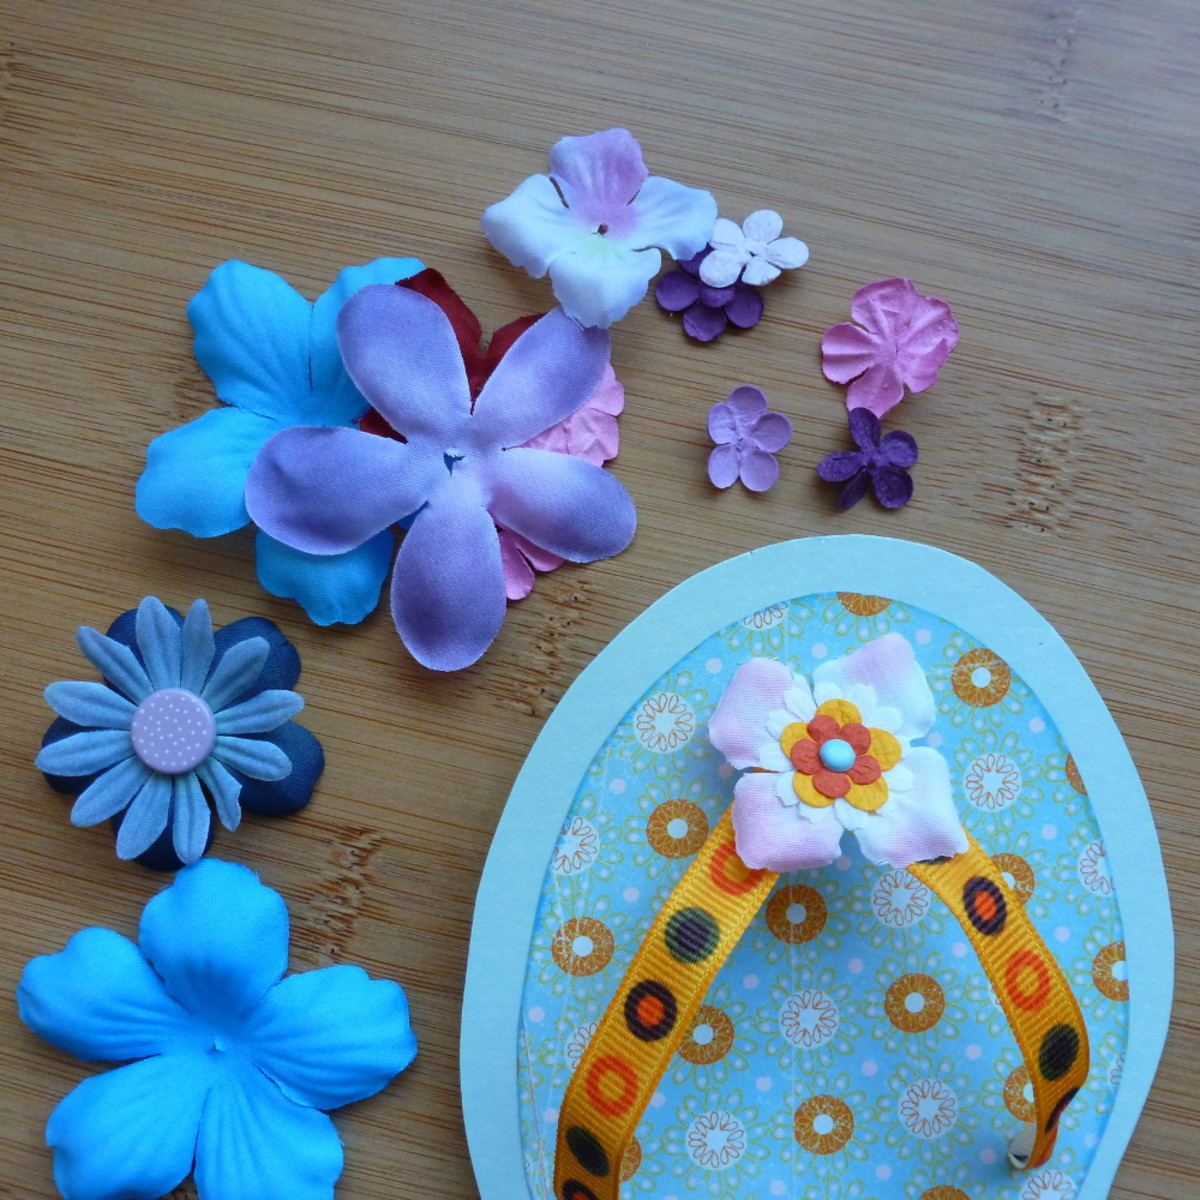 a54d1092b3ab Adding floral embellishments to the shoe card handmade DIY flip flop cards  to make.